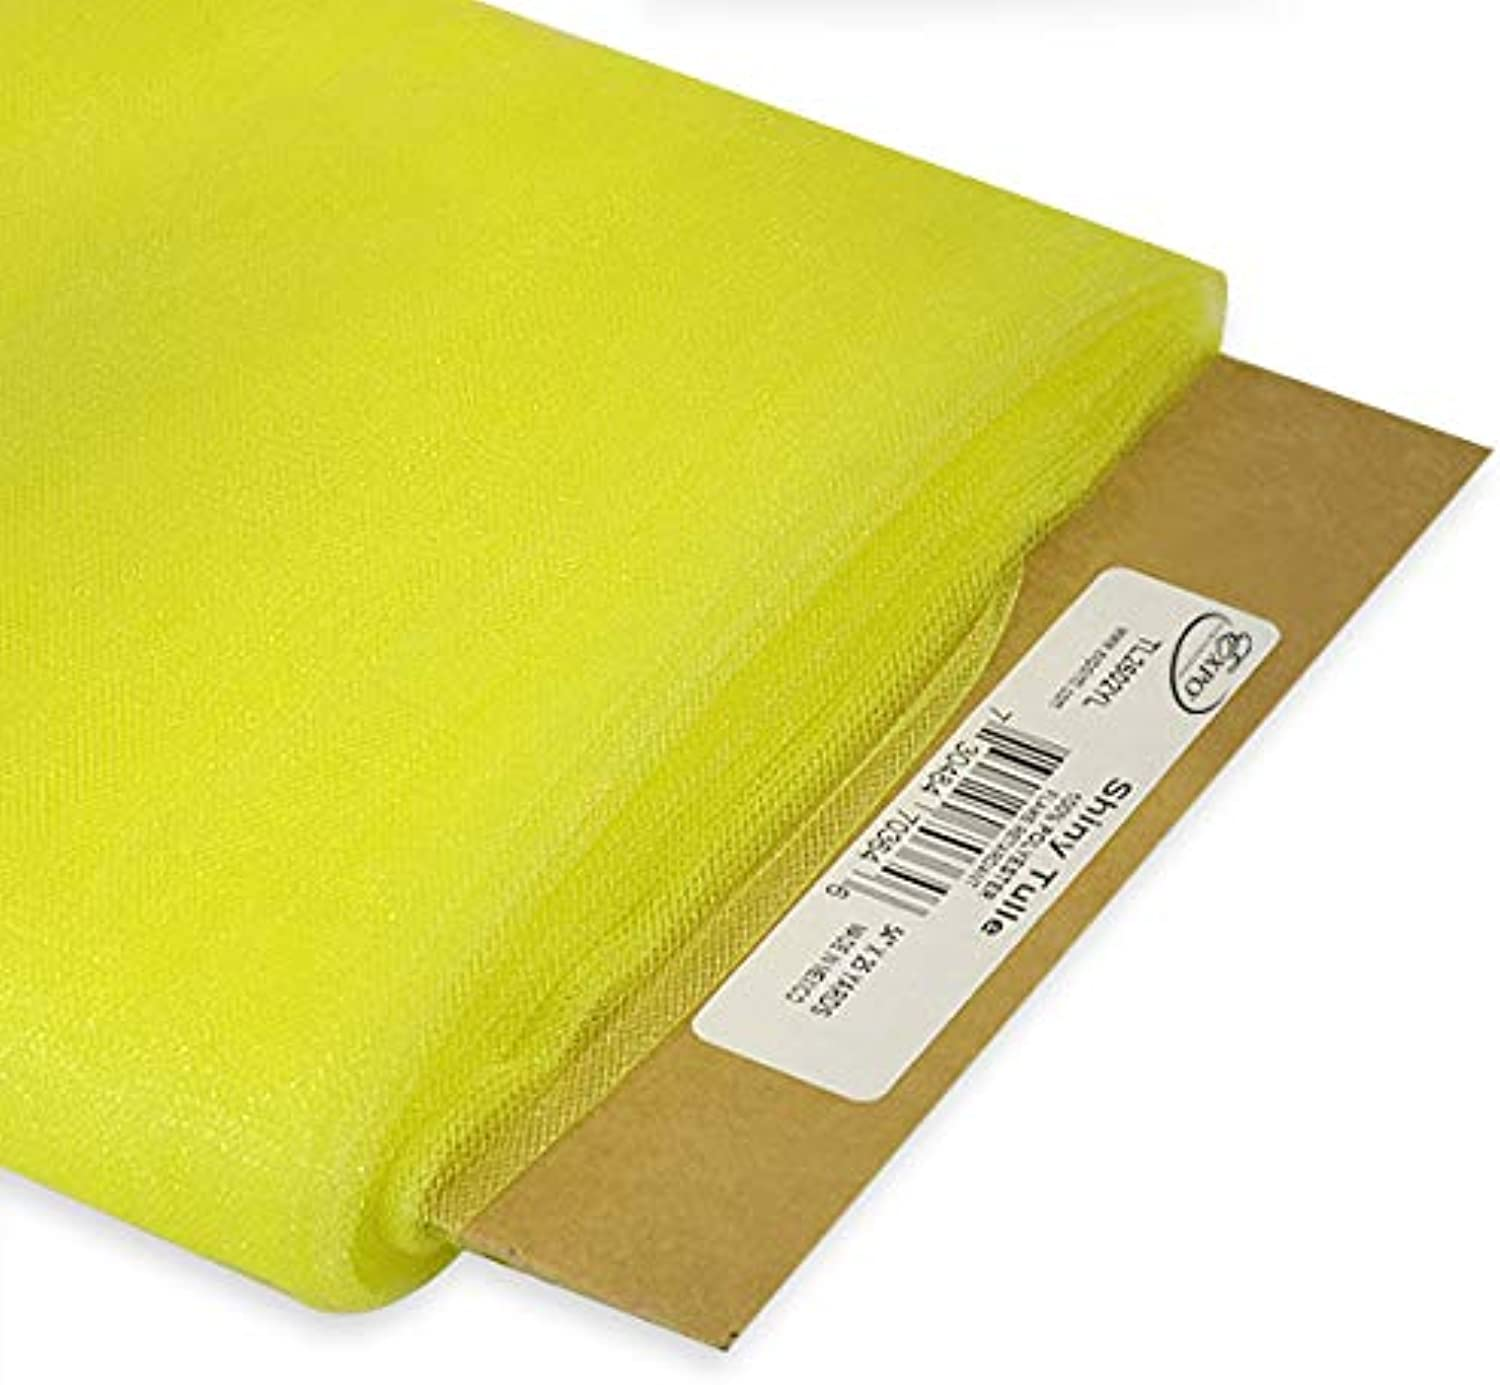 Expo International 54Inch Shiny Polyester Tulle Fabric, Yellow, 54Inch 25Yard